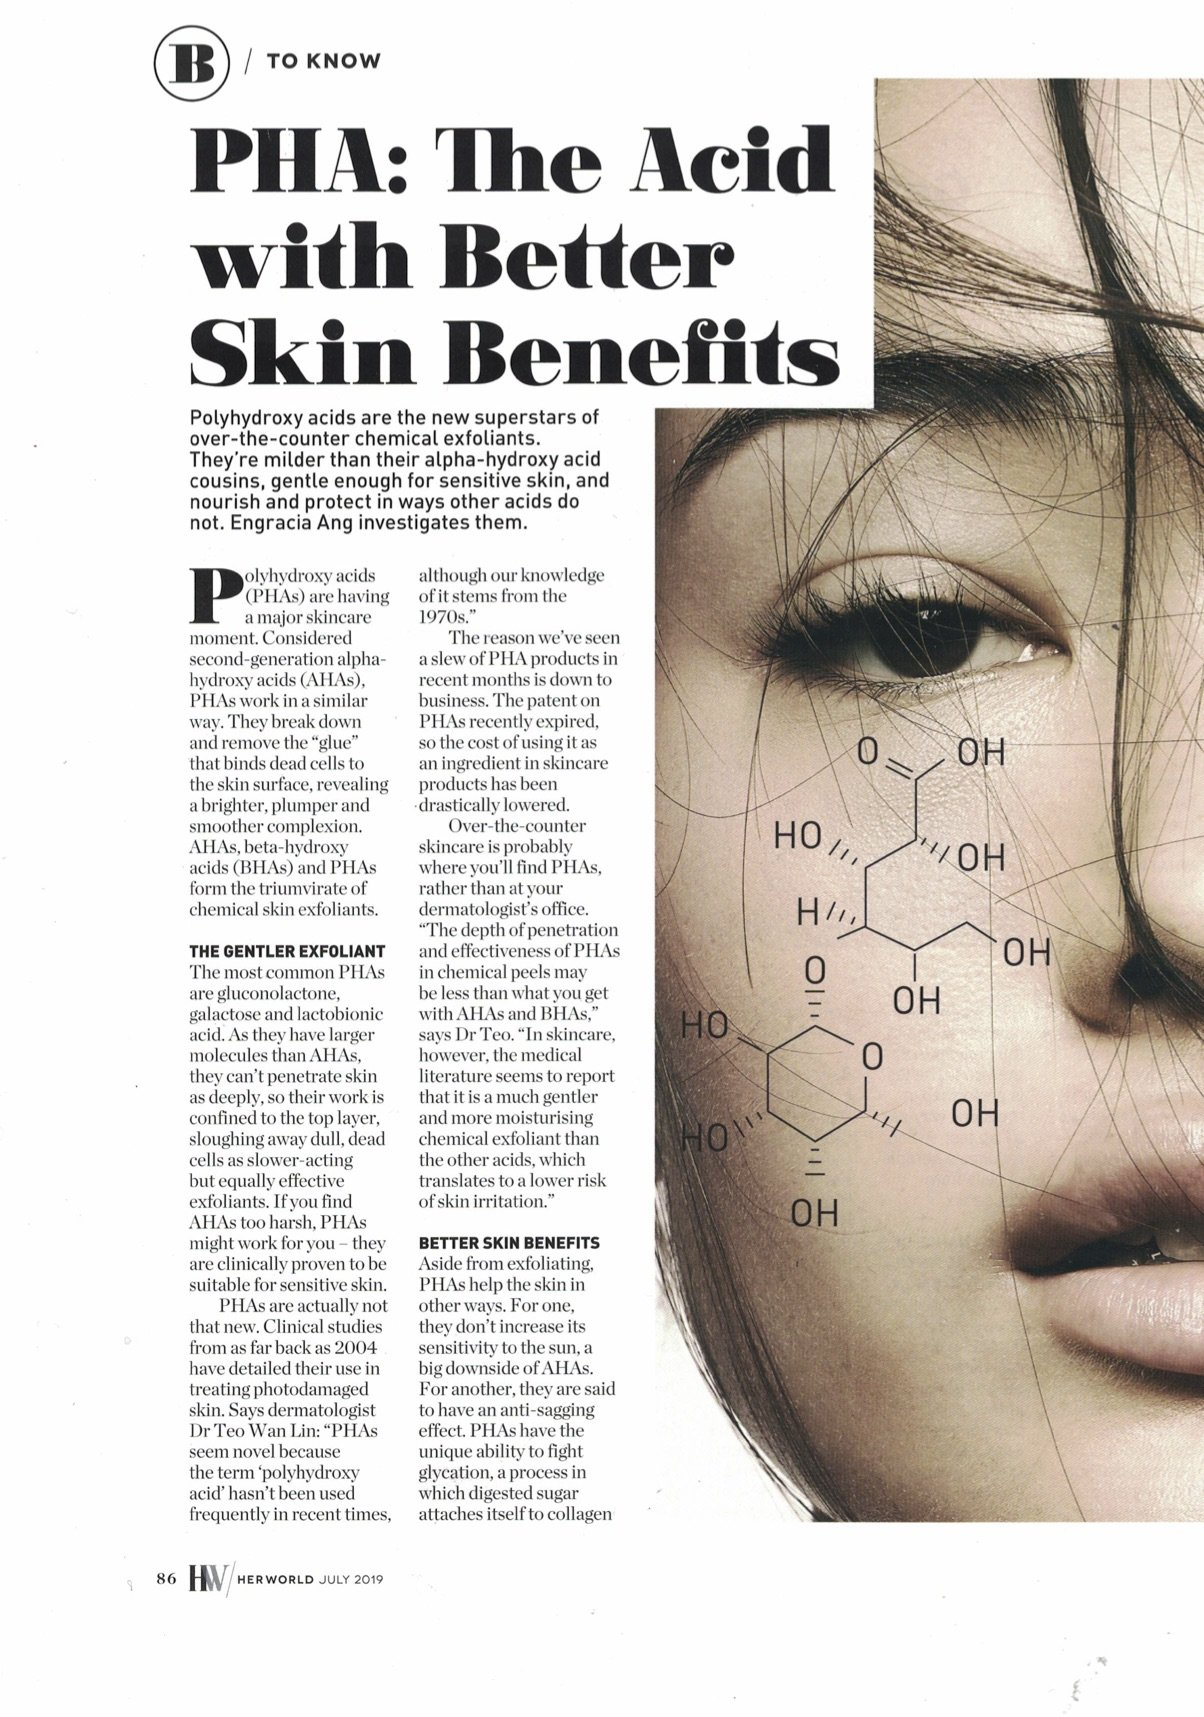 PHA: The Acid with Better Skin Benefits - Pg 1 - Dermatologist Shares